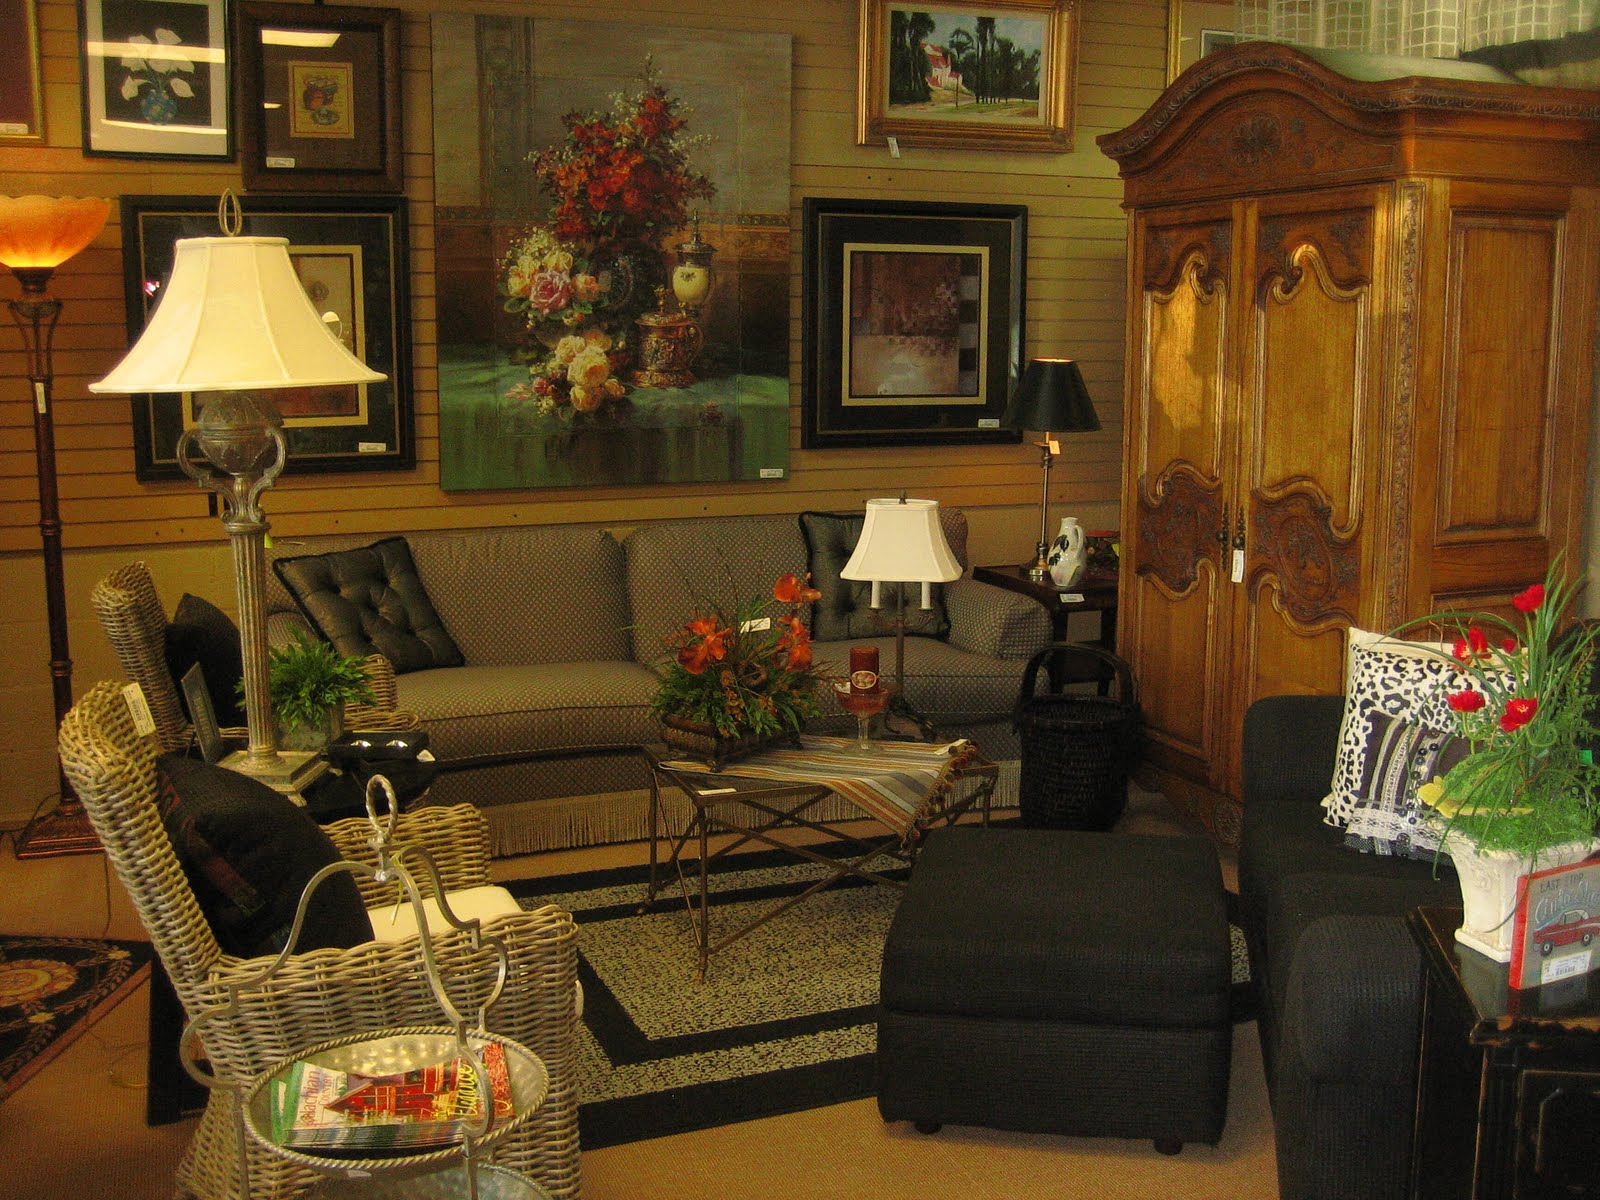 Shop online with confidence at Rooms To Go, America's #1 independent furniture retailer. With nearly furniture stores / showrooms, we have the buying power to .